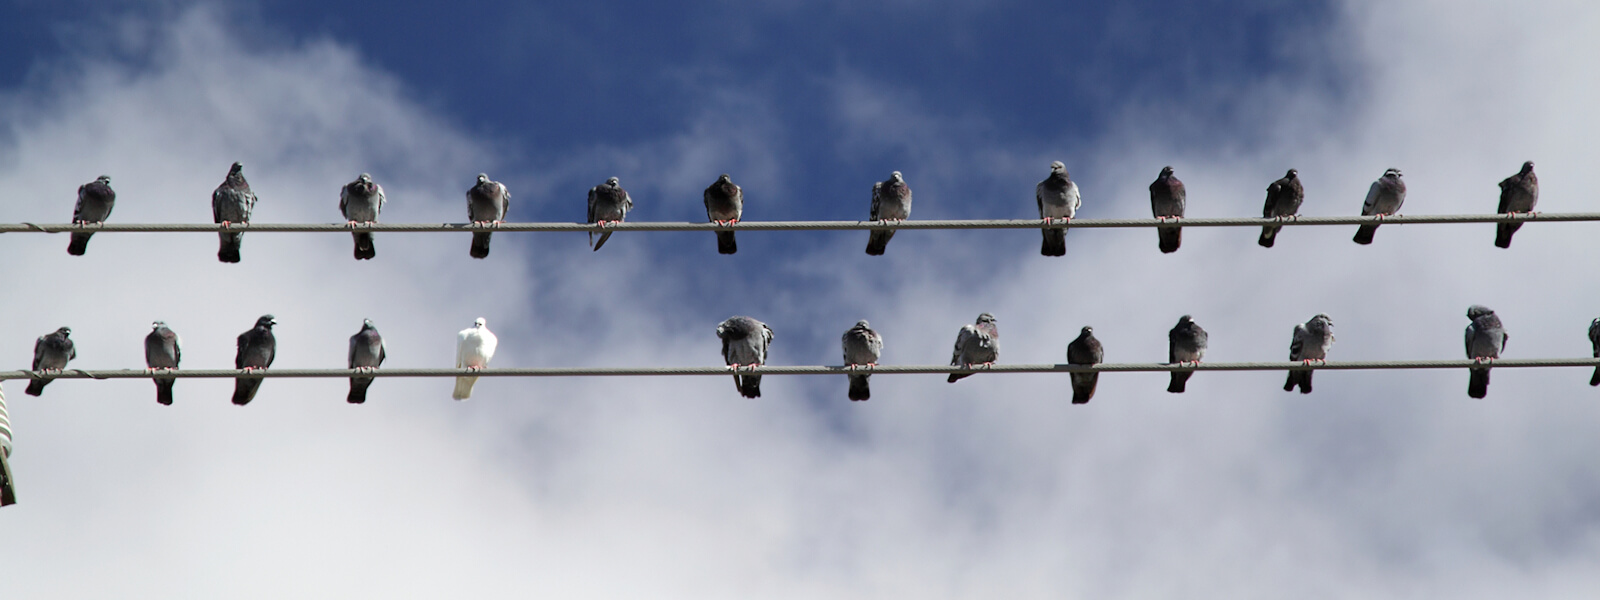 Numerous Pigeons perching on electrical lines and telephone lines